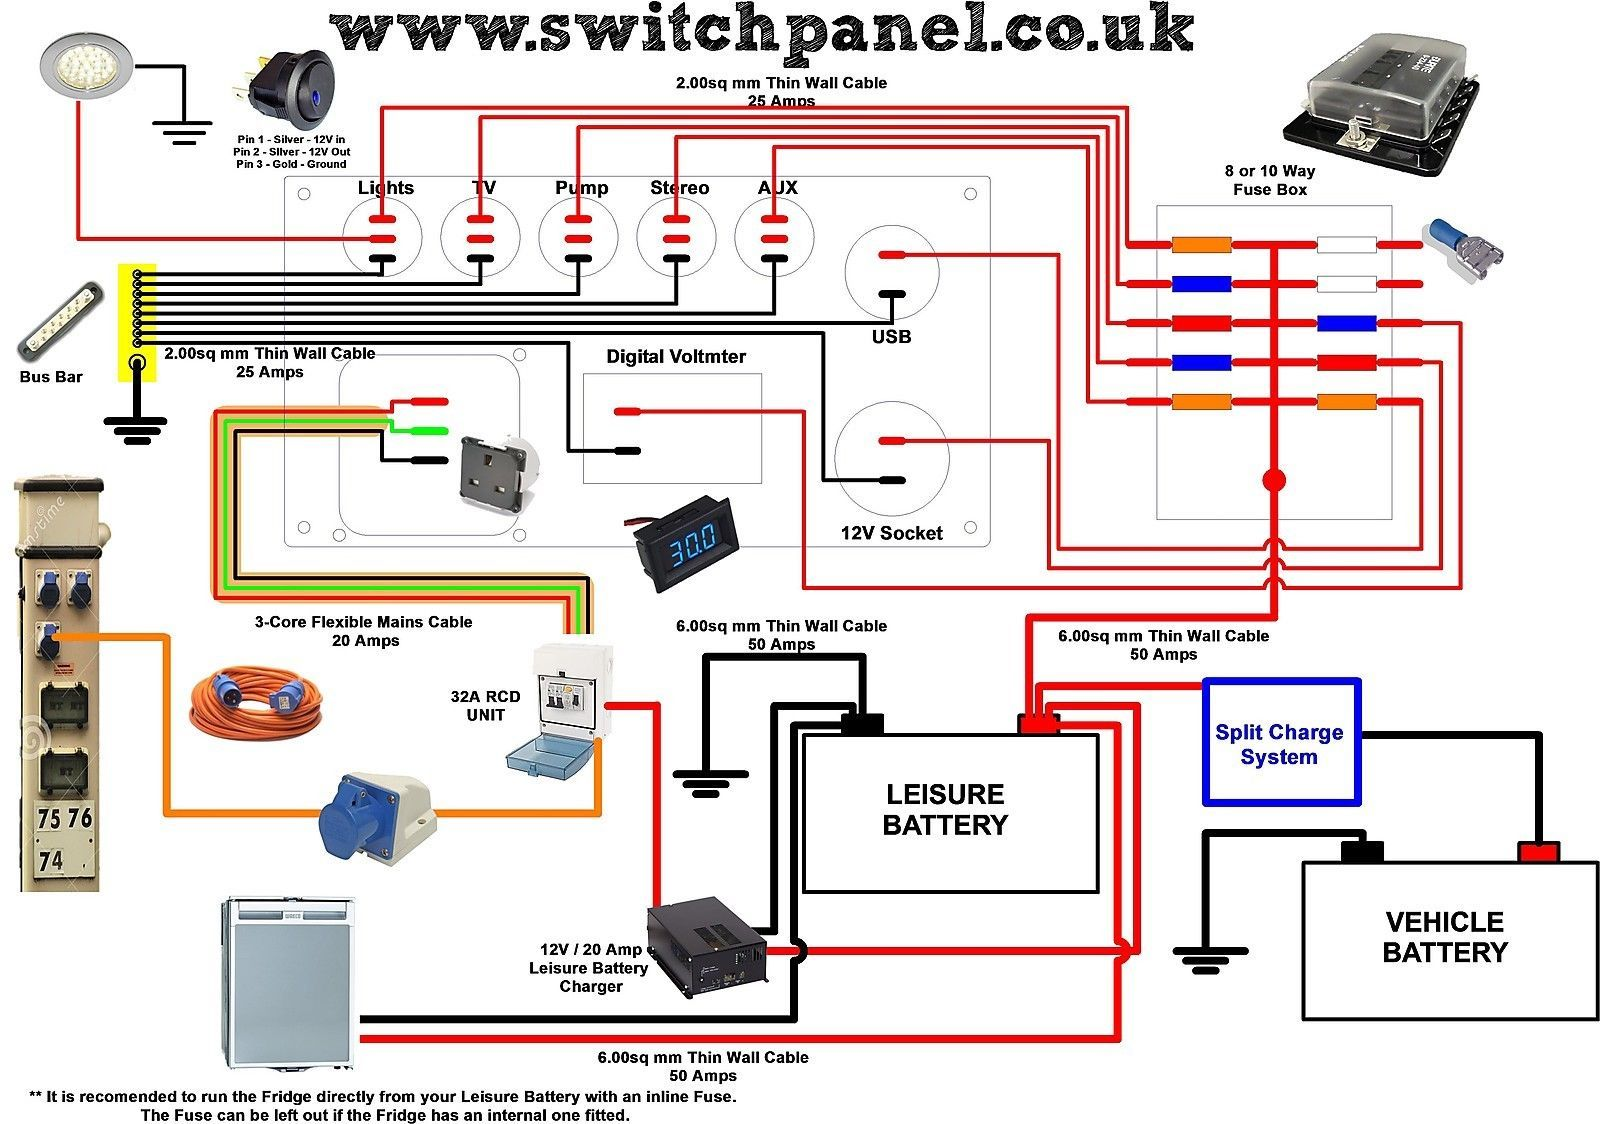 Camper Van Switch Panel Usb Vw Transporter Vito Bongo Marine Van Conversion